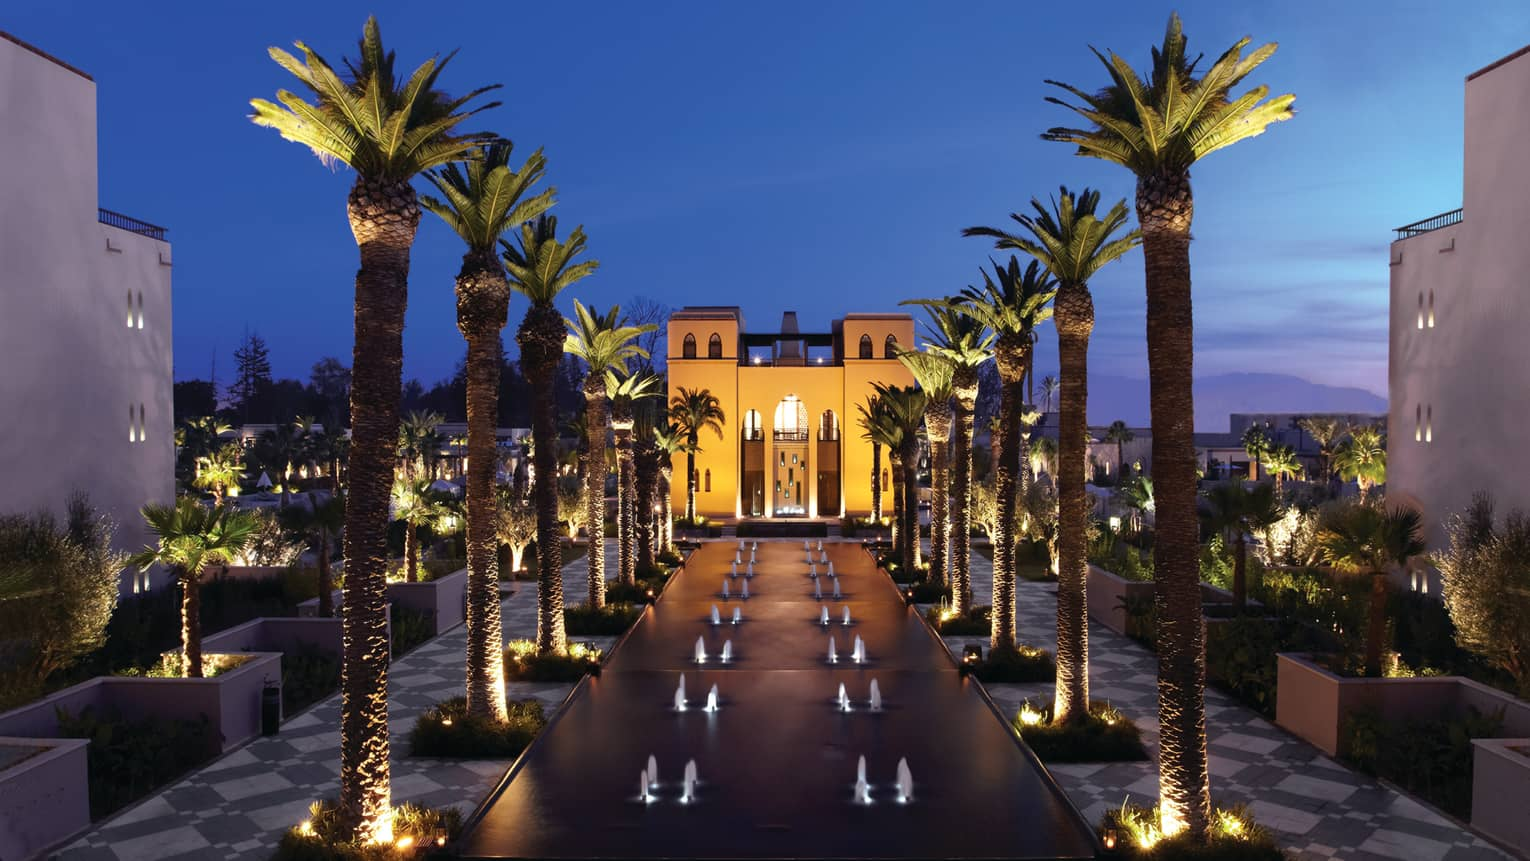 Fountains between rows of tall palm trees in front of illuminated Four Seasons Resort Marrakech hotel at night